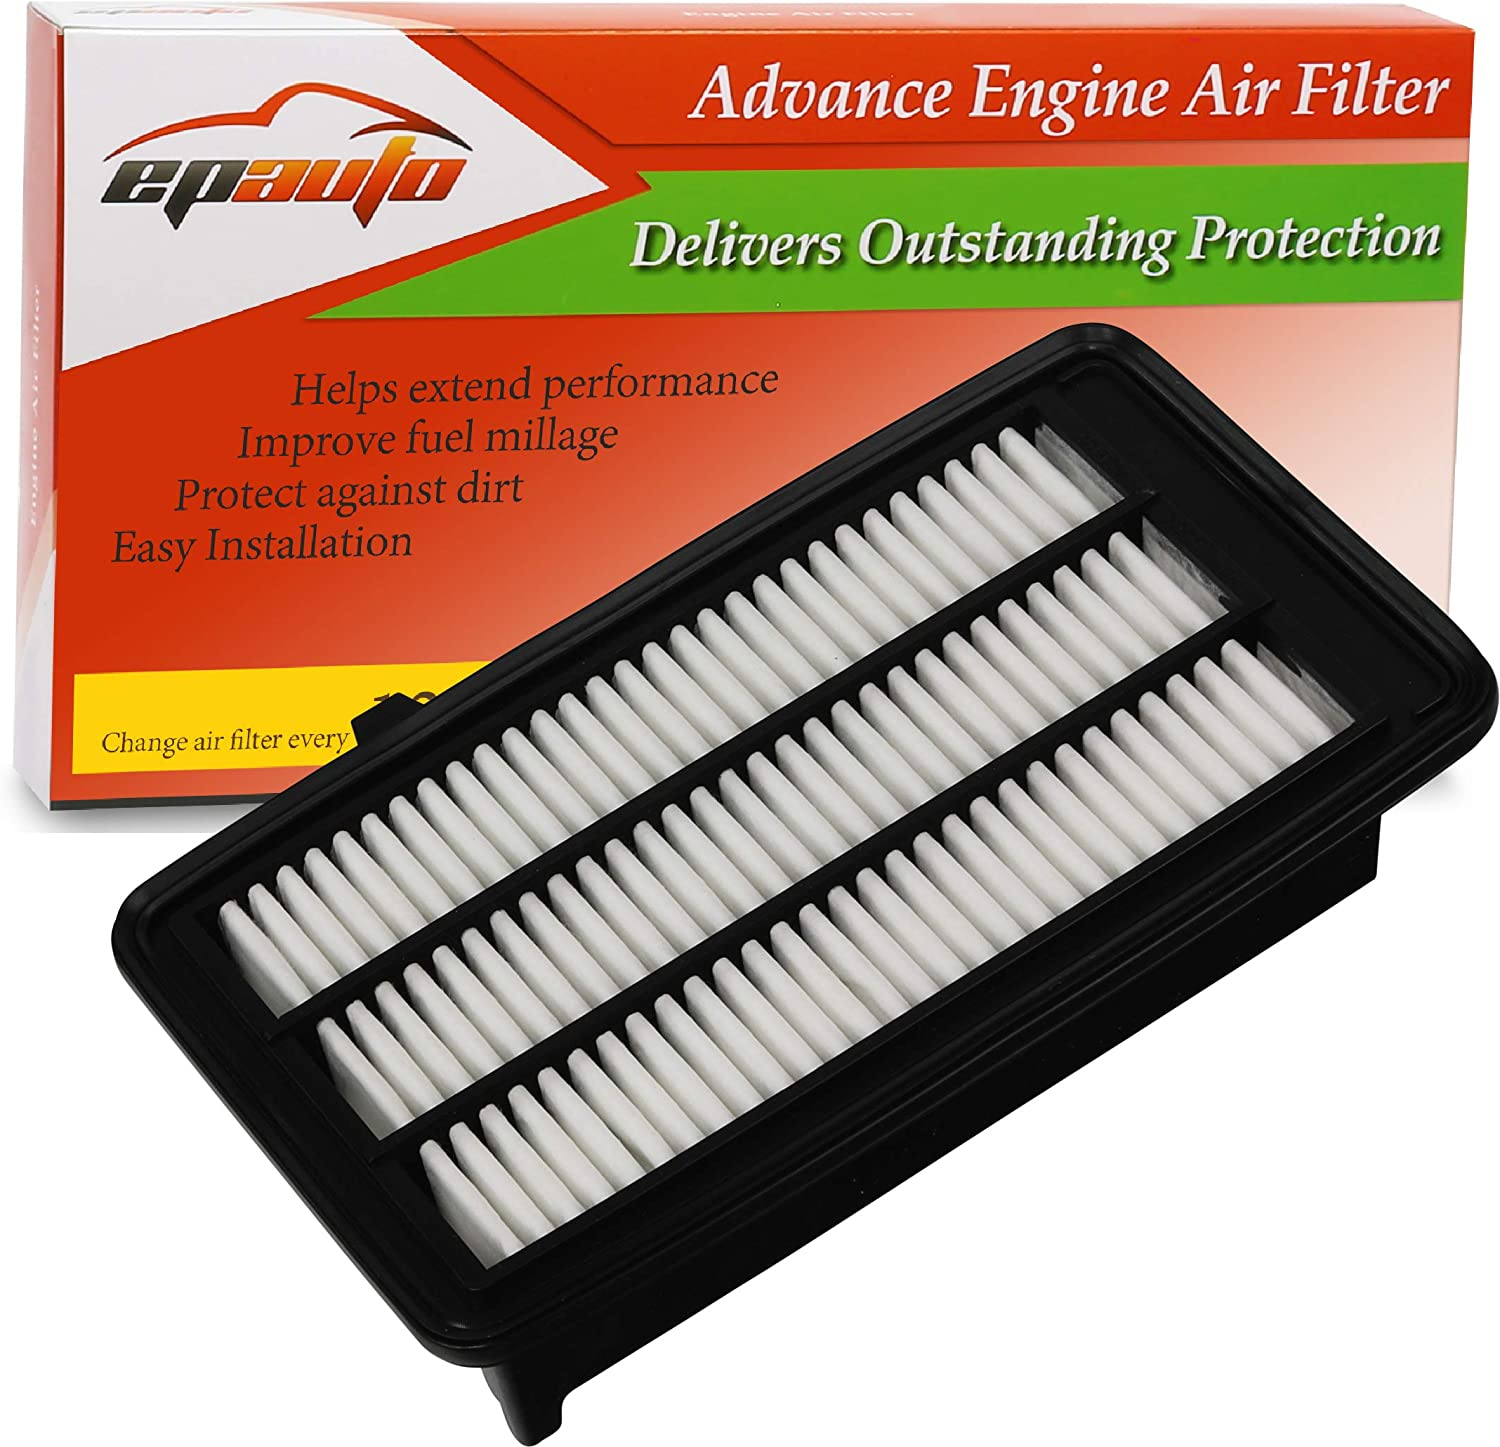 EPAuto GP050 (CA12050) Replacement for Honda Extra Guard Rigid Panel Air Filter for Civic 1.5L (2016-2019), CR-V 1.5L (2017-2019)